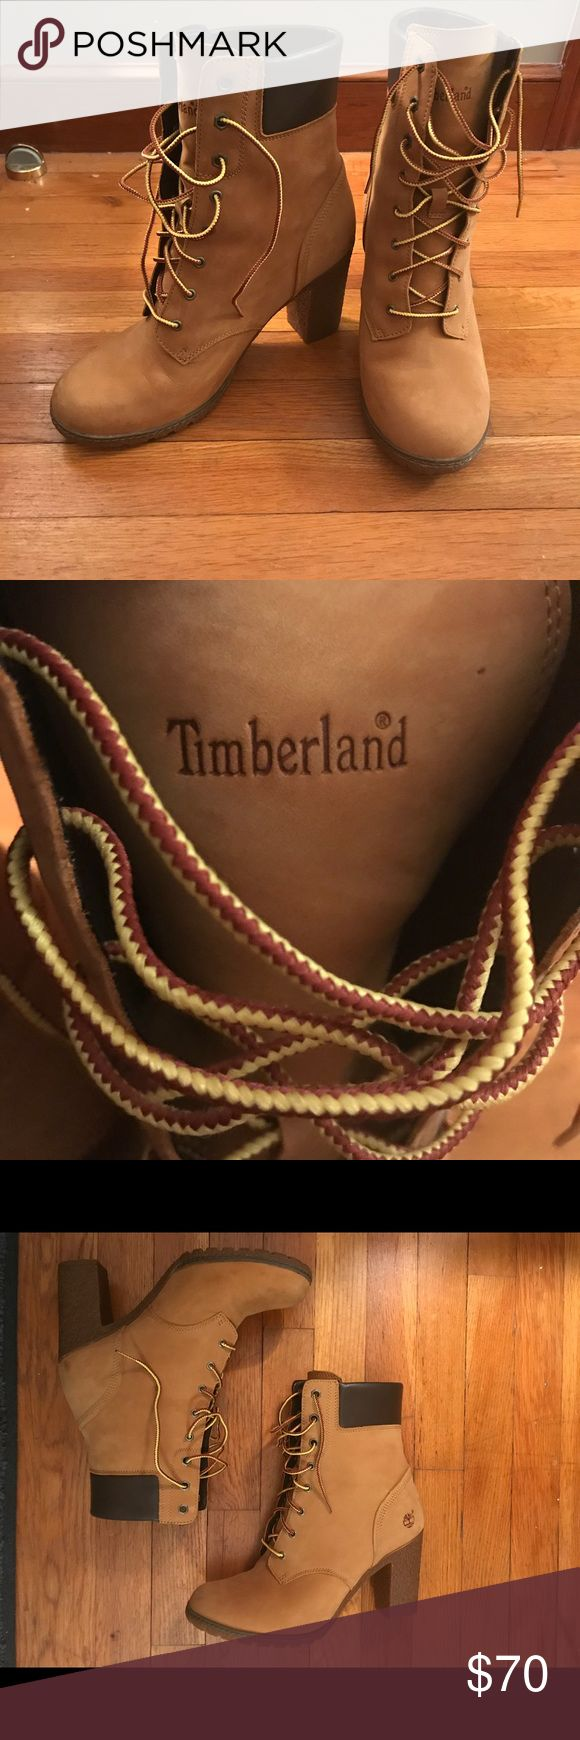 Timberland jeep boots size 10w Size 10w. Worn once inside for about 4 hours so almost perfect condition. Timberland Shoes Heeled Boots